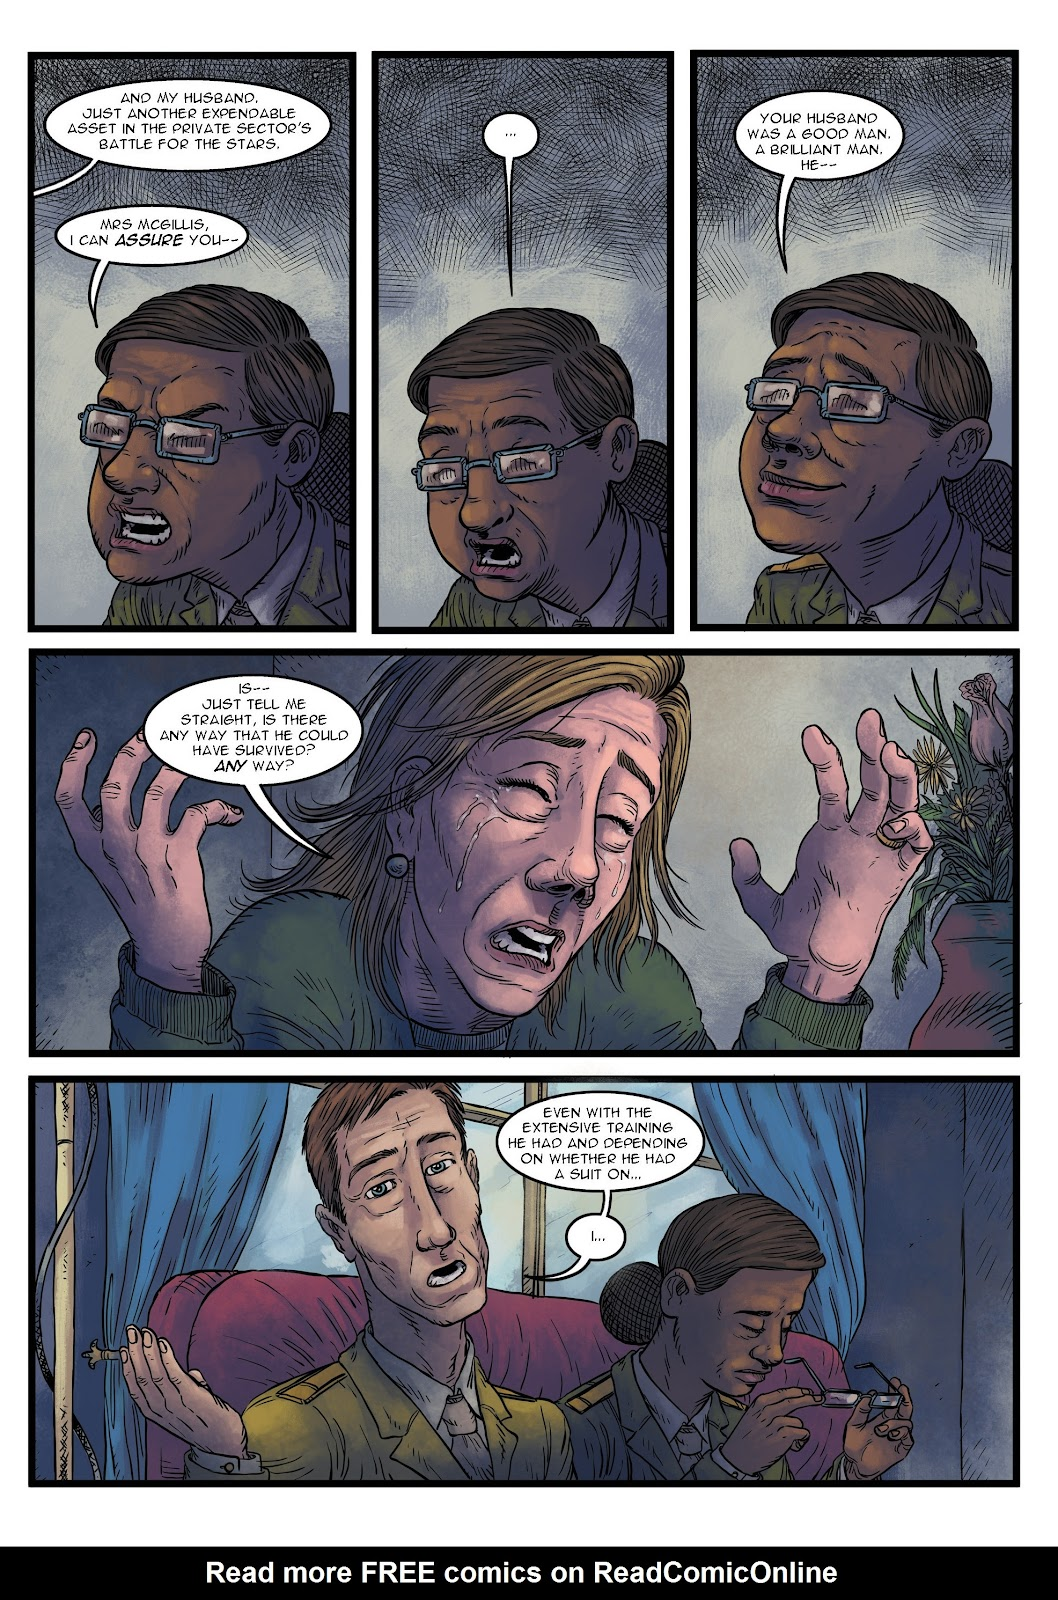 Read online Impossible comic -  Issue # TPB - 58